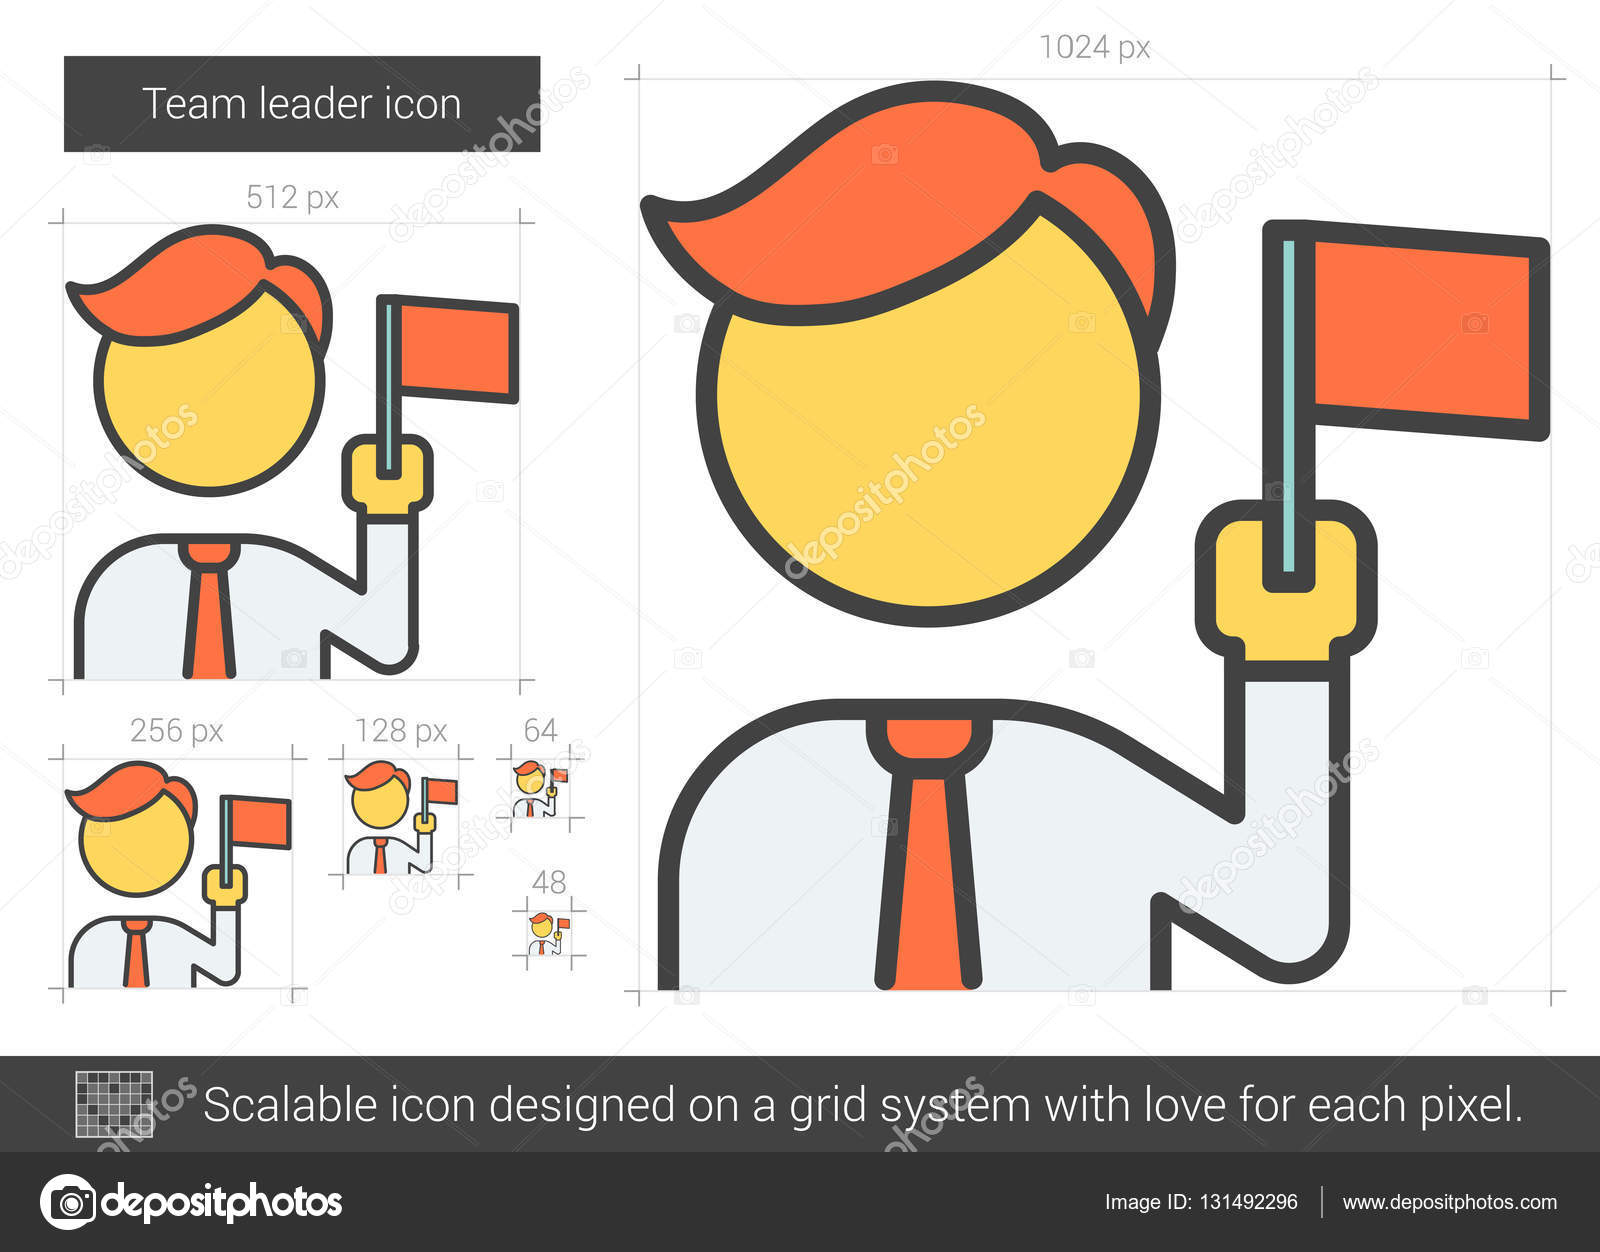 team leader line icon stock vector © rastudio 131492296 team leader vector line icon isolated on white background team leader line icon for infographic website or app scalable icon designed on a grid system